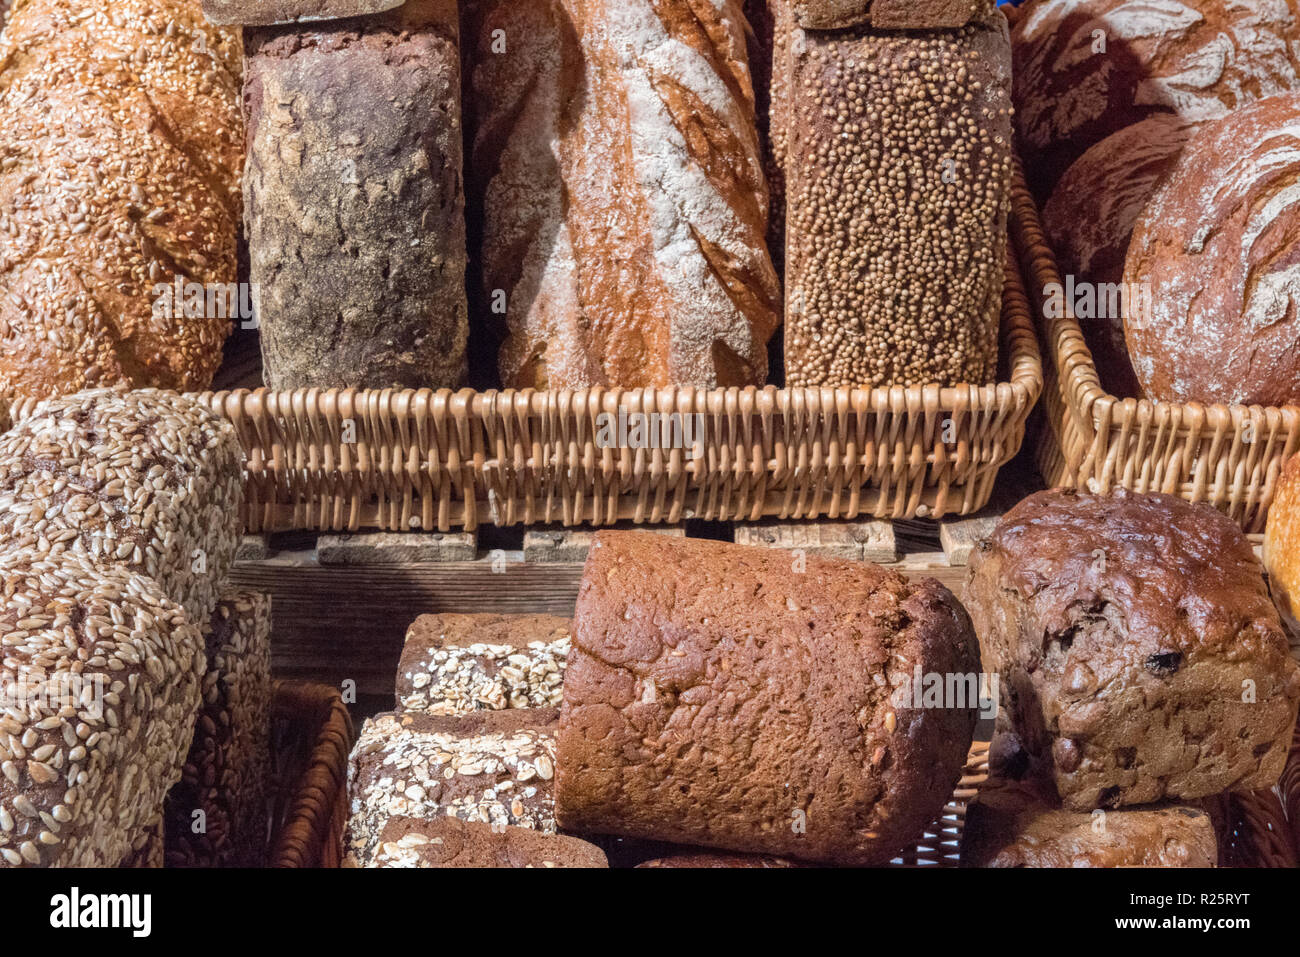 a selection or variety of loaves wholemeal, white and granary at an artisan bakery at borough market in london. - Stock Image